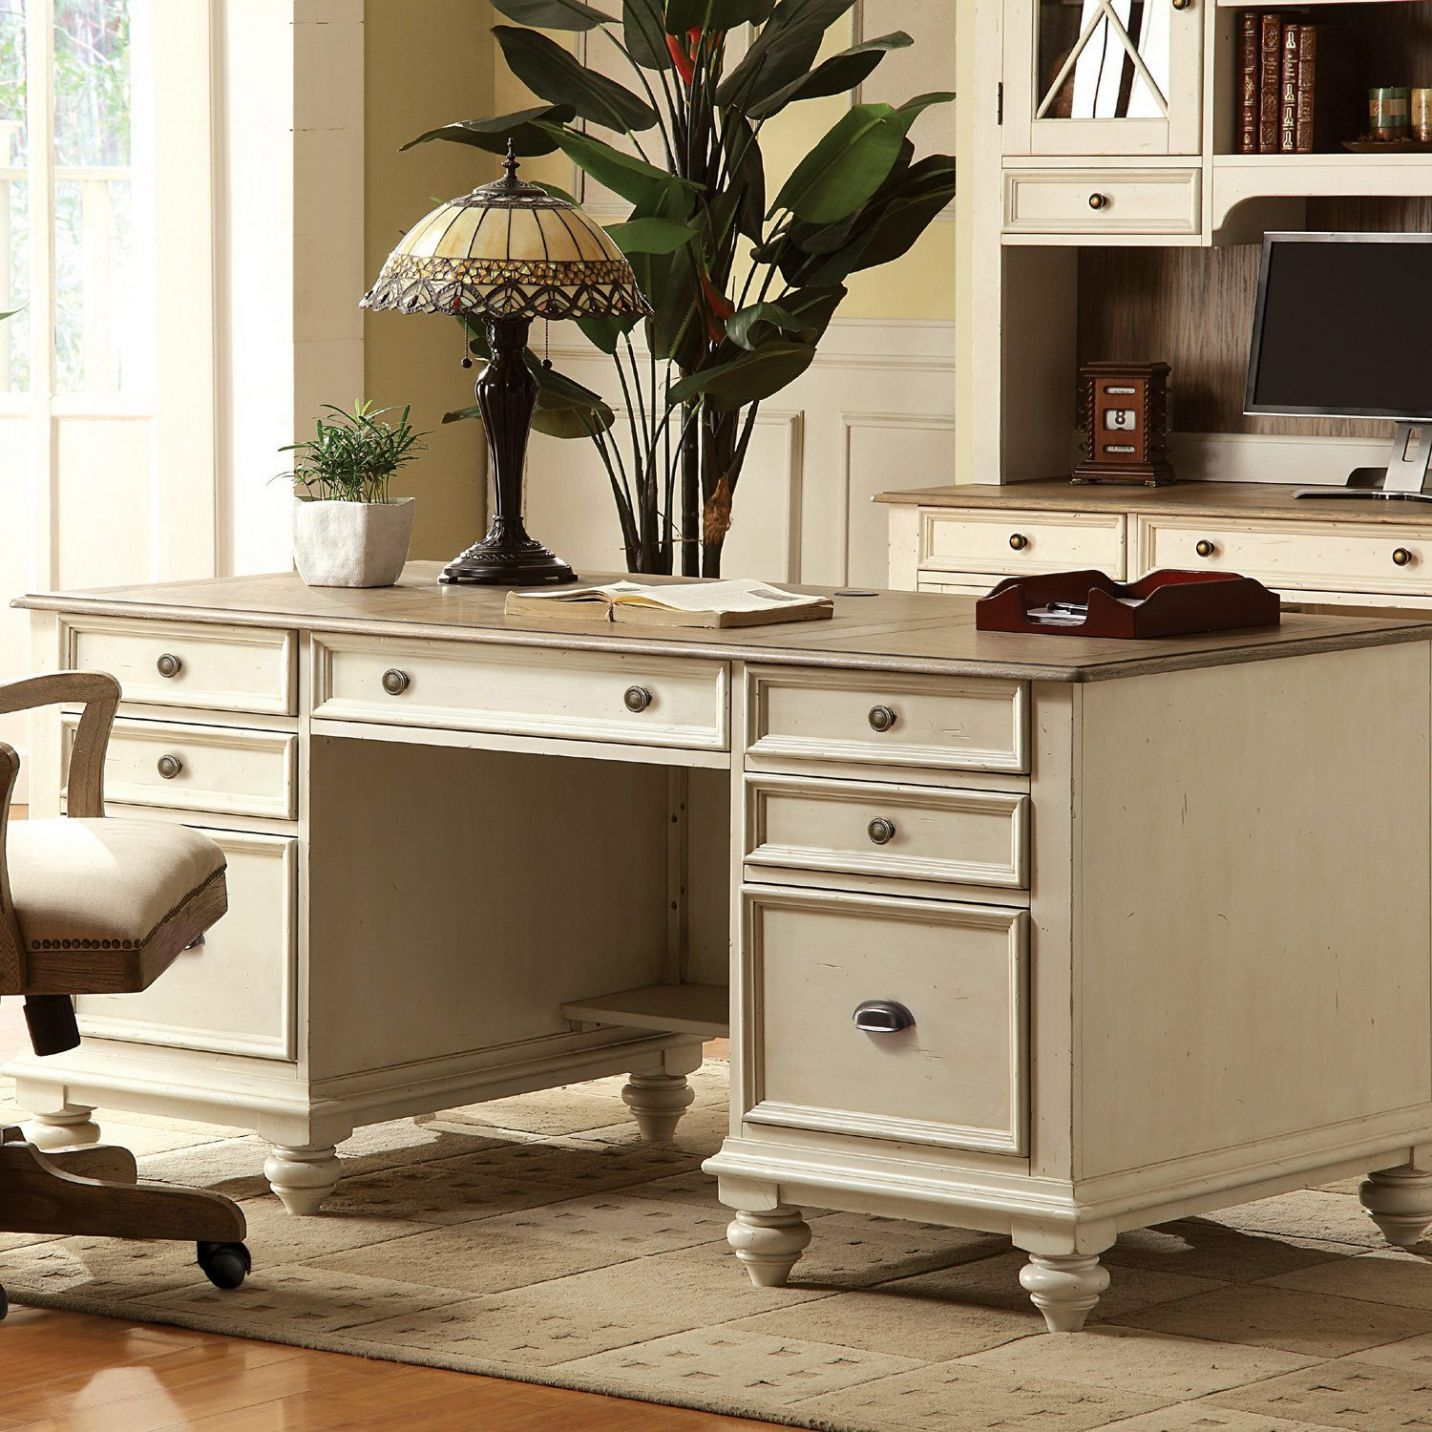 Genial Antique White Office Desk   Home Office Desk Furniture Check More At  Http://michael Malarkey.com/antique White Office Desk/